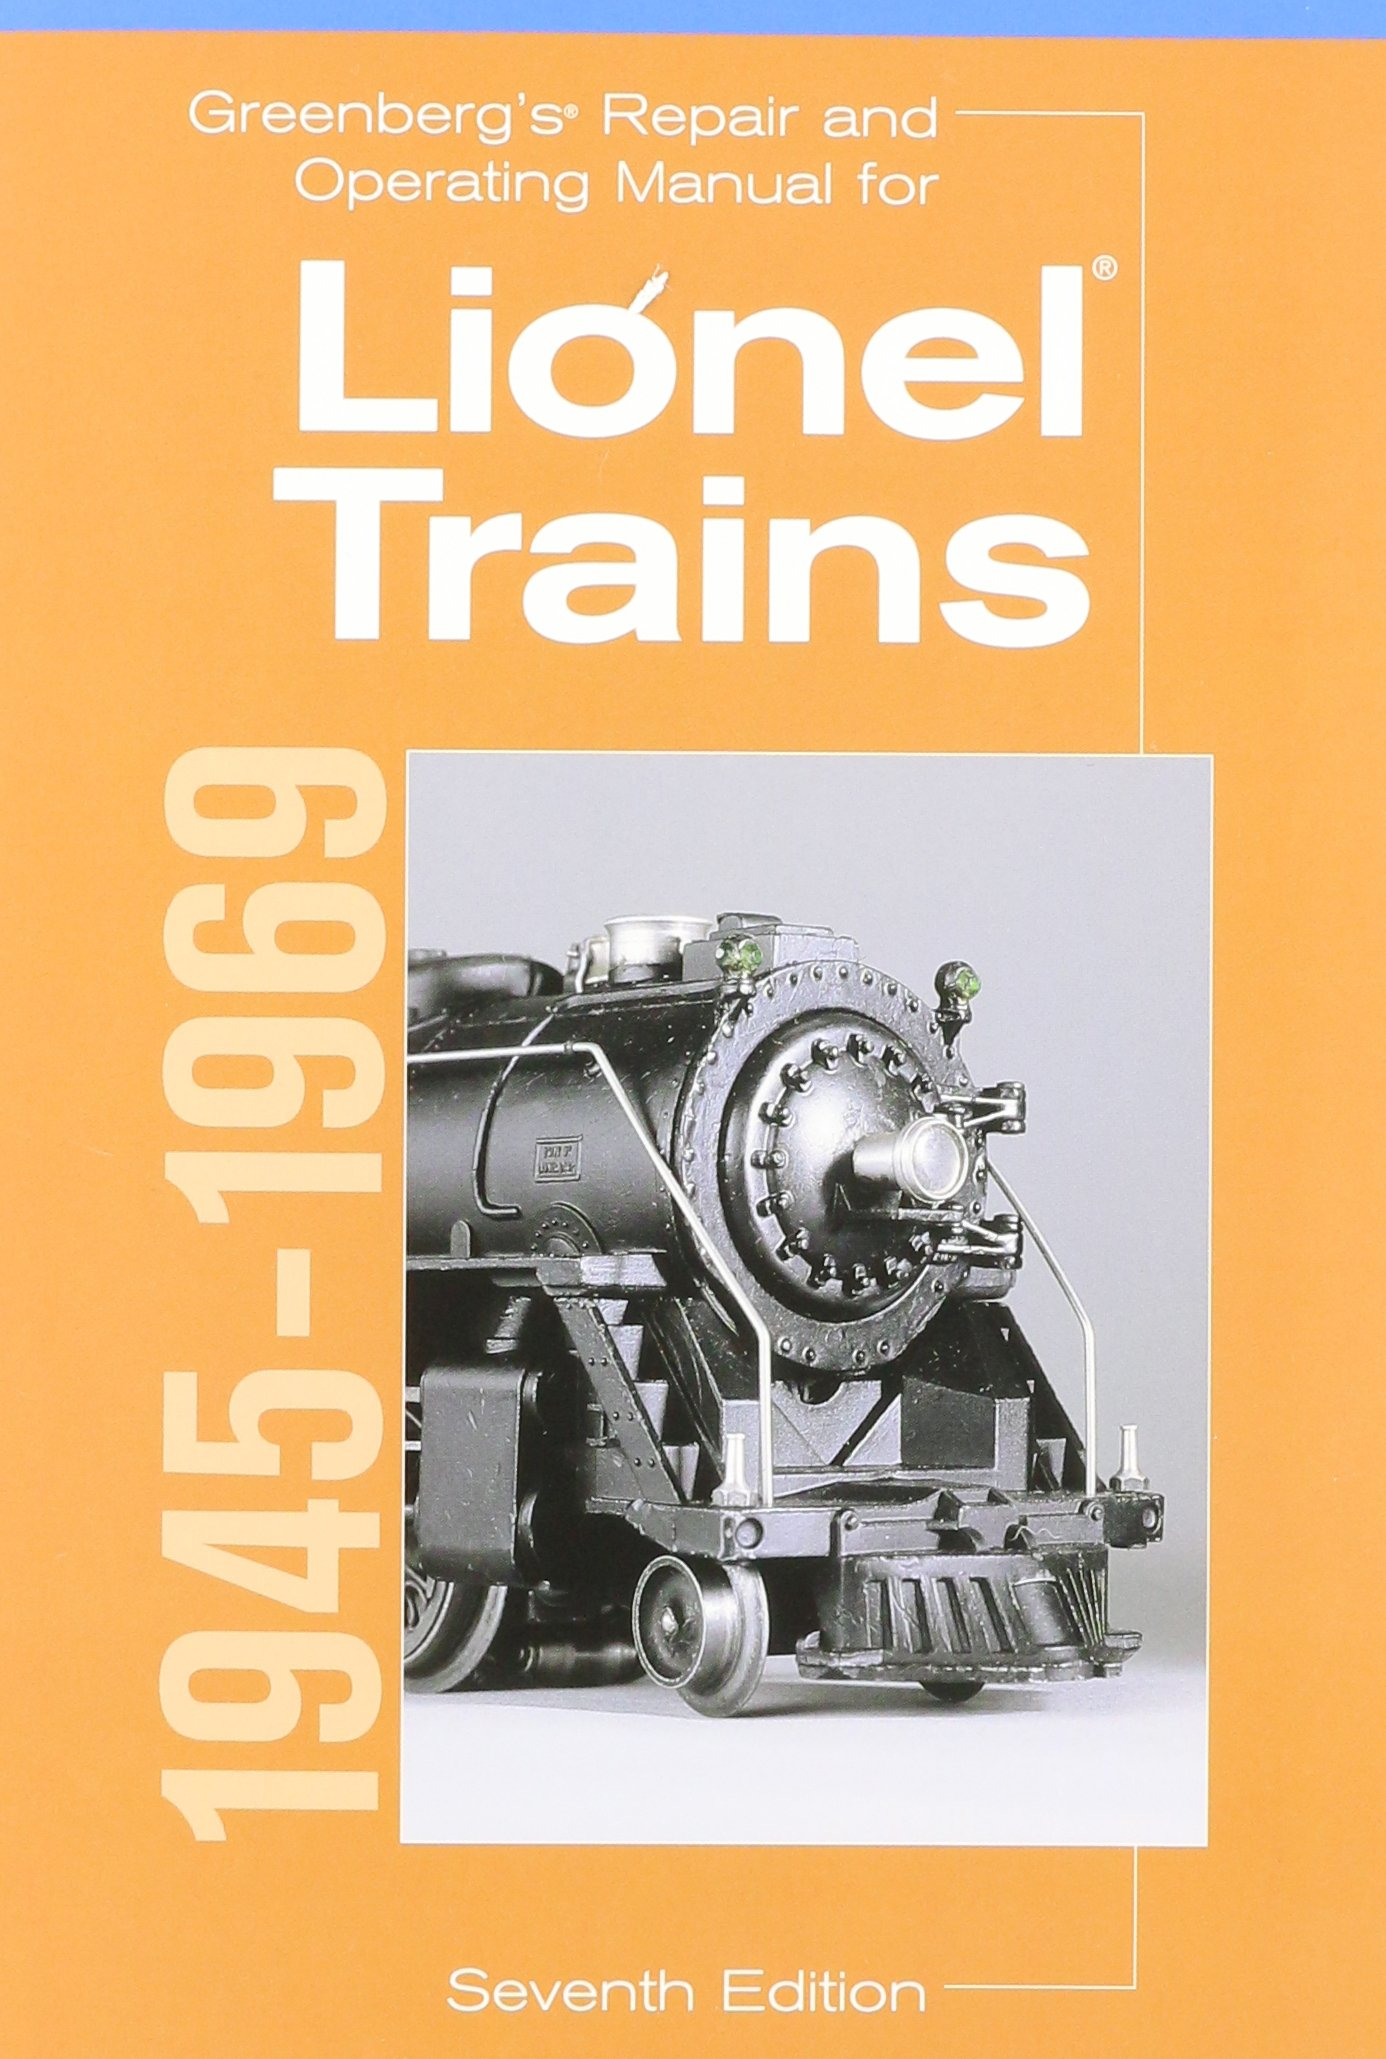 Lionel Motor Wiring Diagram Greenbergs Repair And Operating Manual For Trains 1945 1969 Manuals Roger Carp 9780897784559